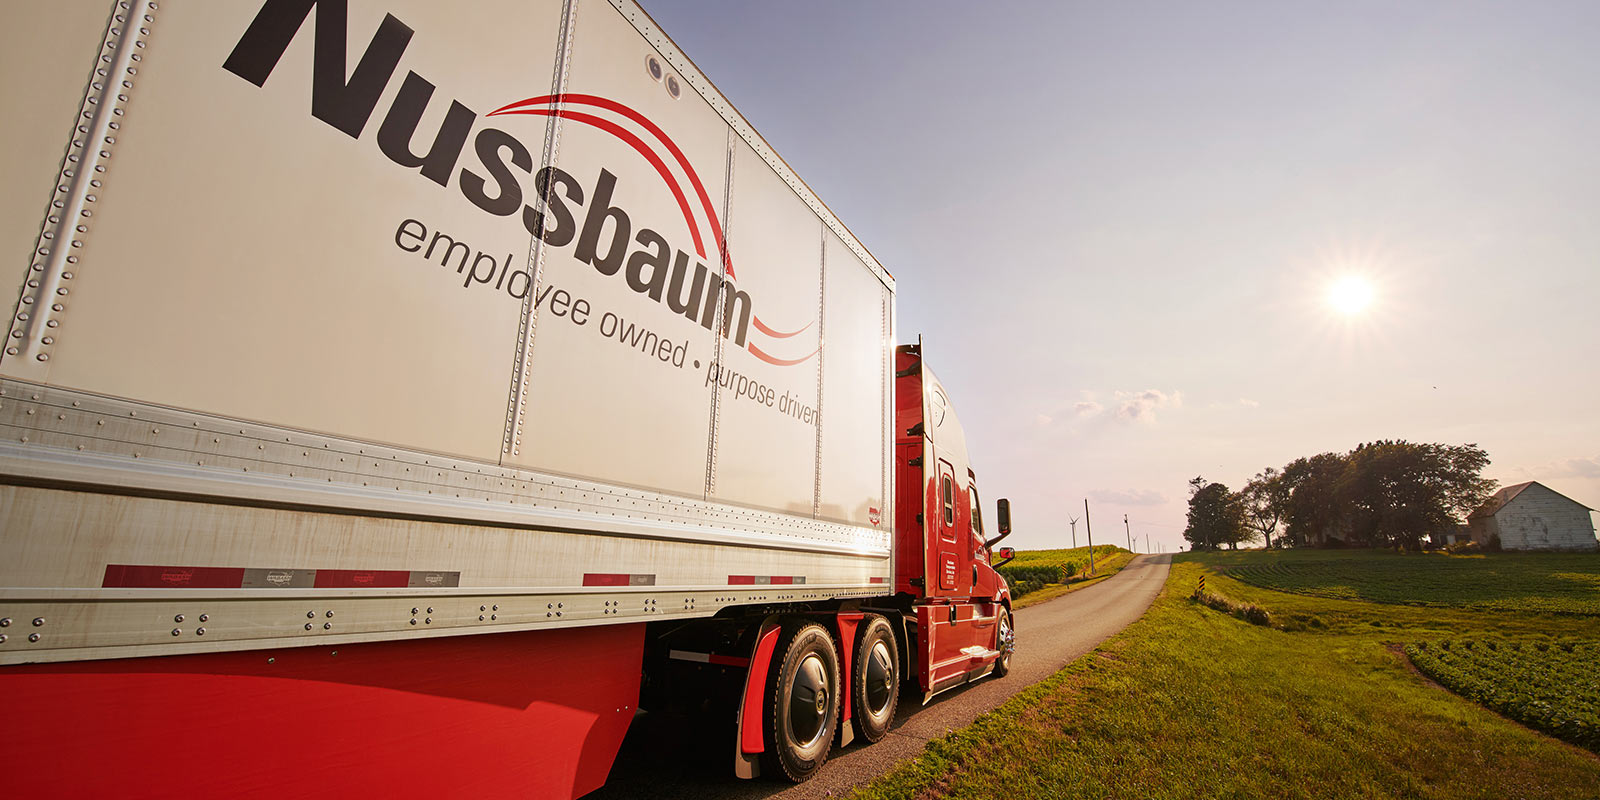 Nussbaum Transportation Smart Trailer